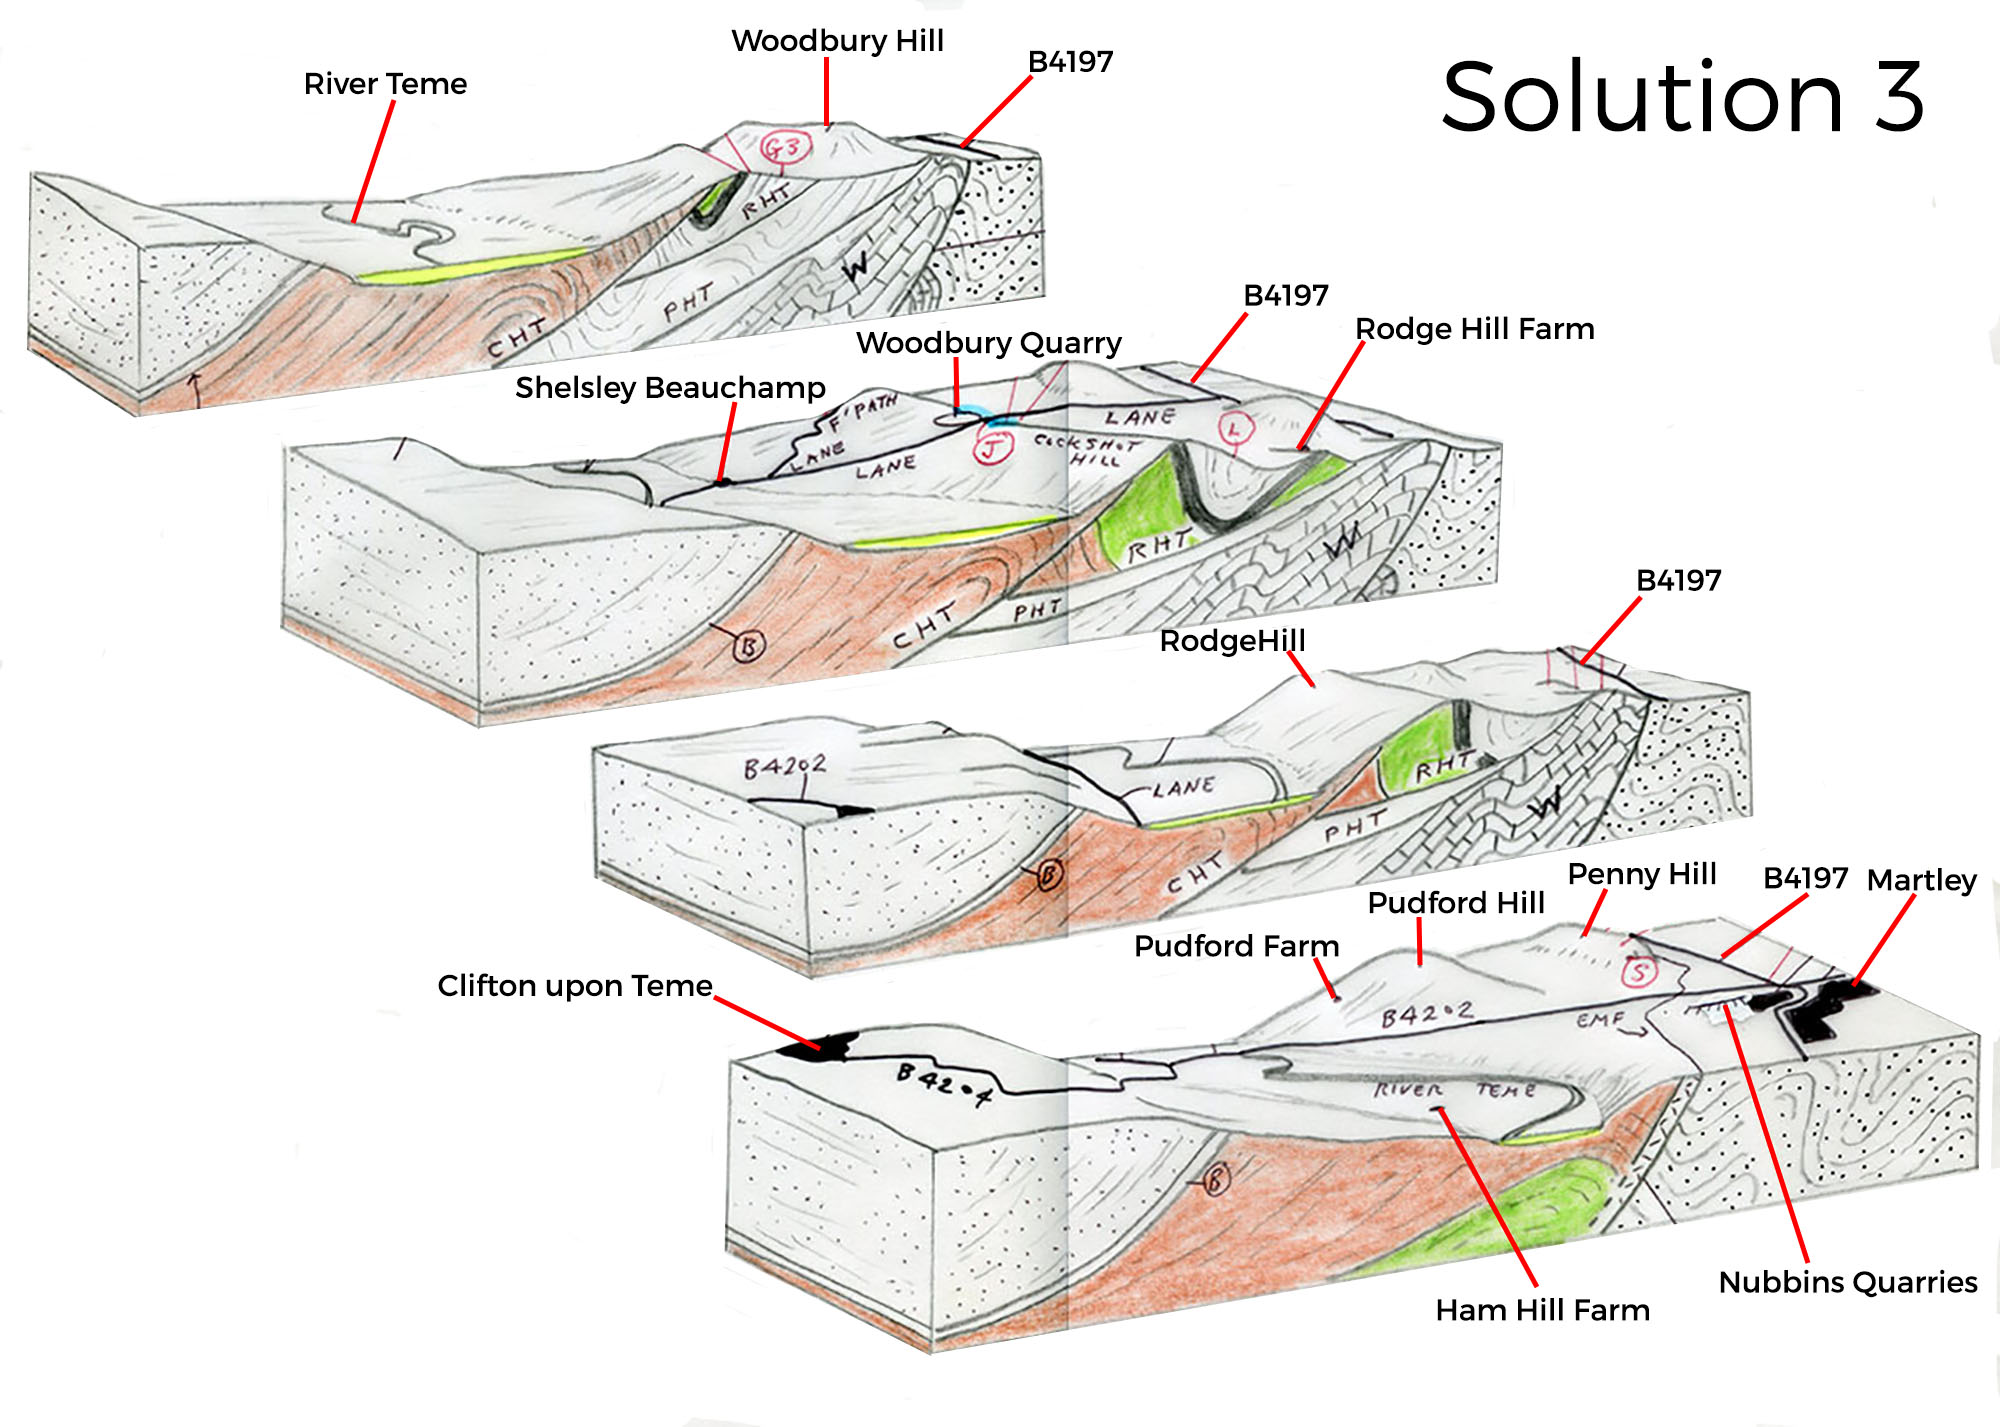 Martley geological section - solution 3